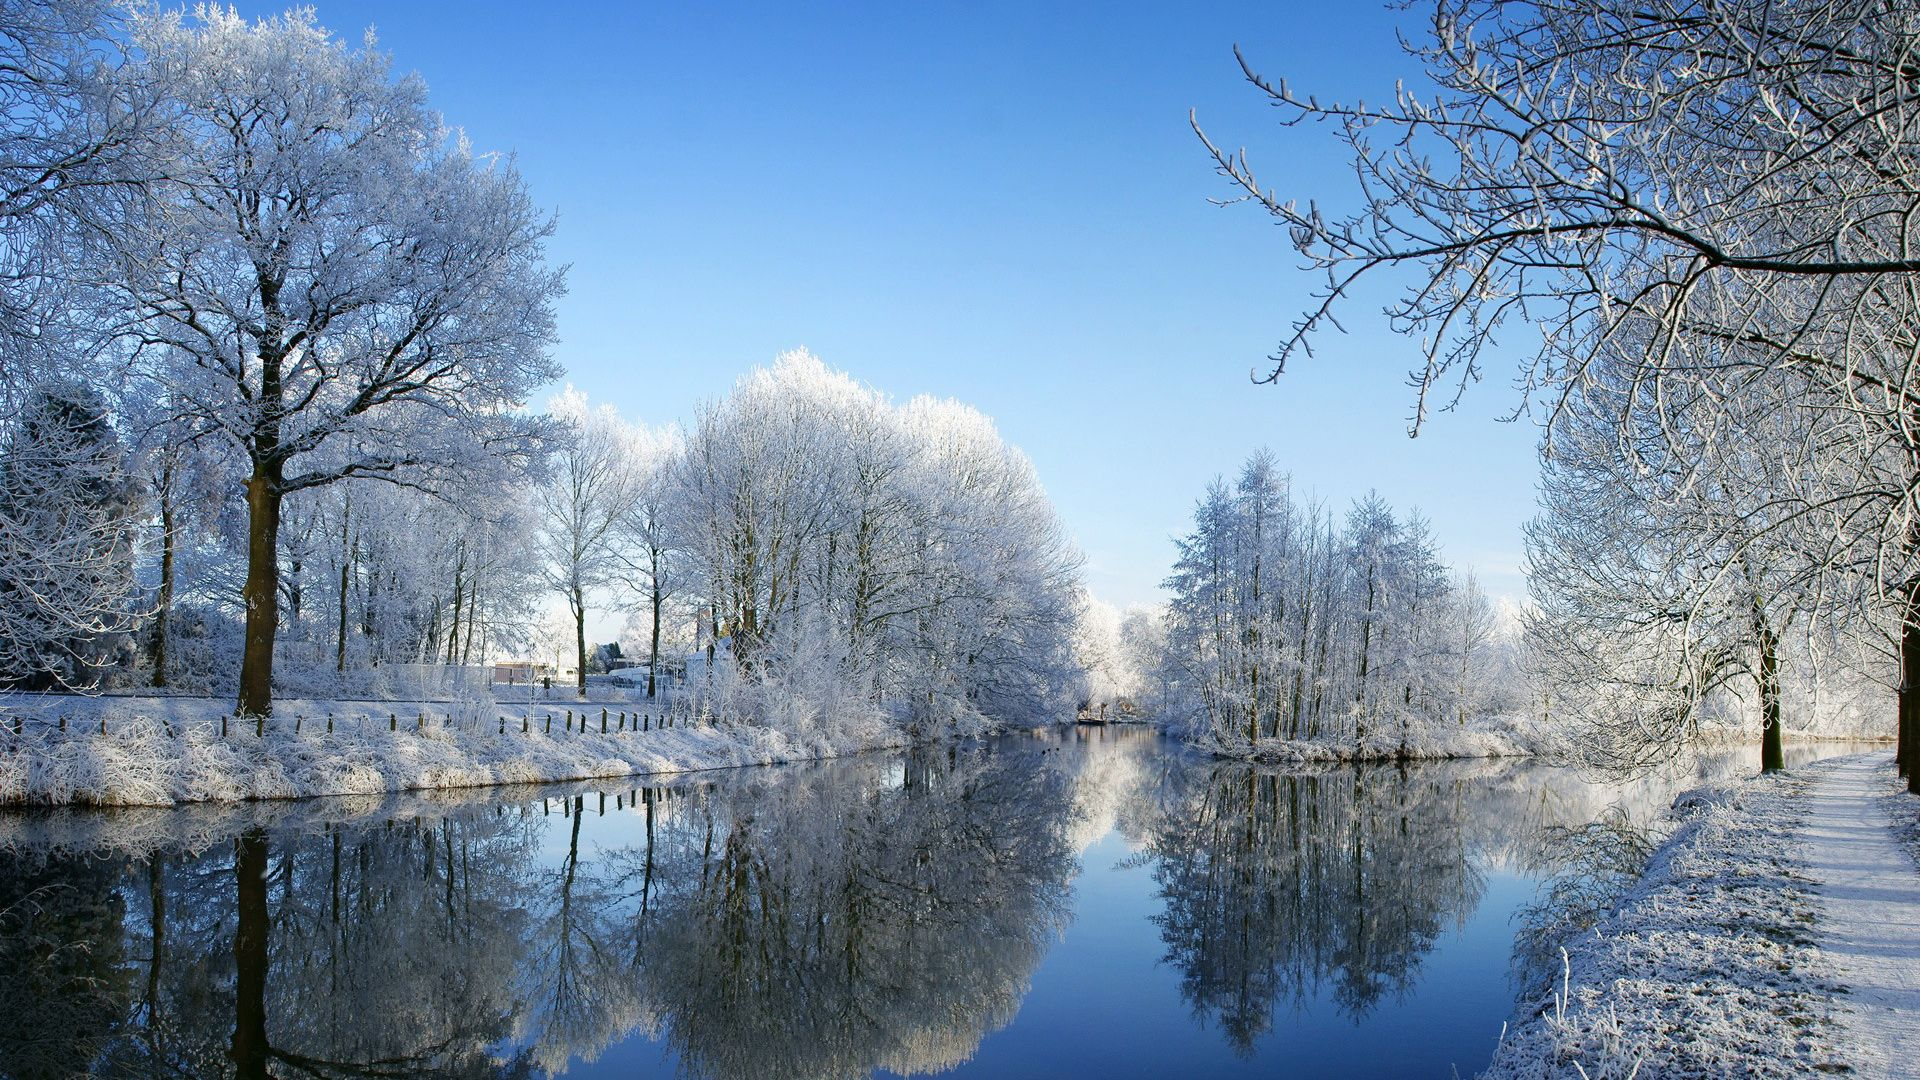 hd winter scene